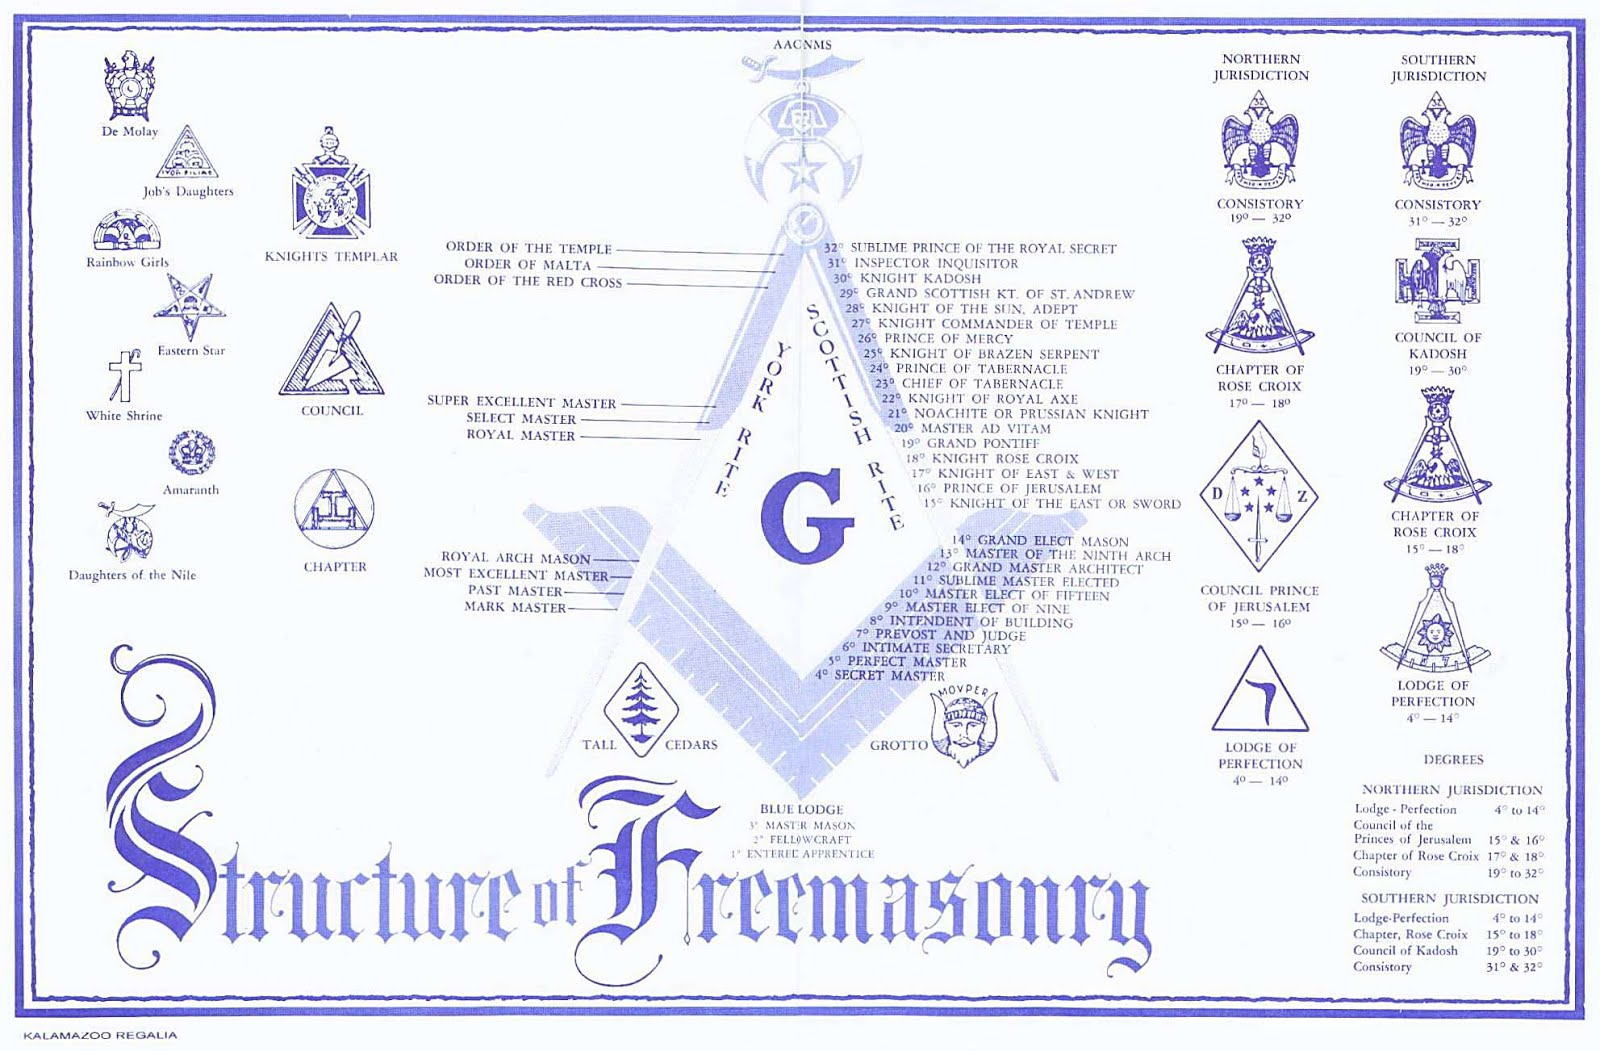 The god press january 2013 the ancient arabic order of the nobles mystic shrine also commonly known as shriners and abbreviated aaonms established in 1870 is an appendant buycottarizona